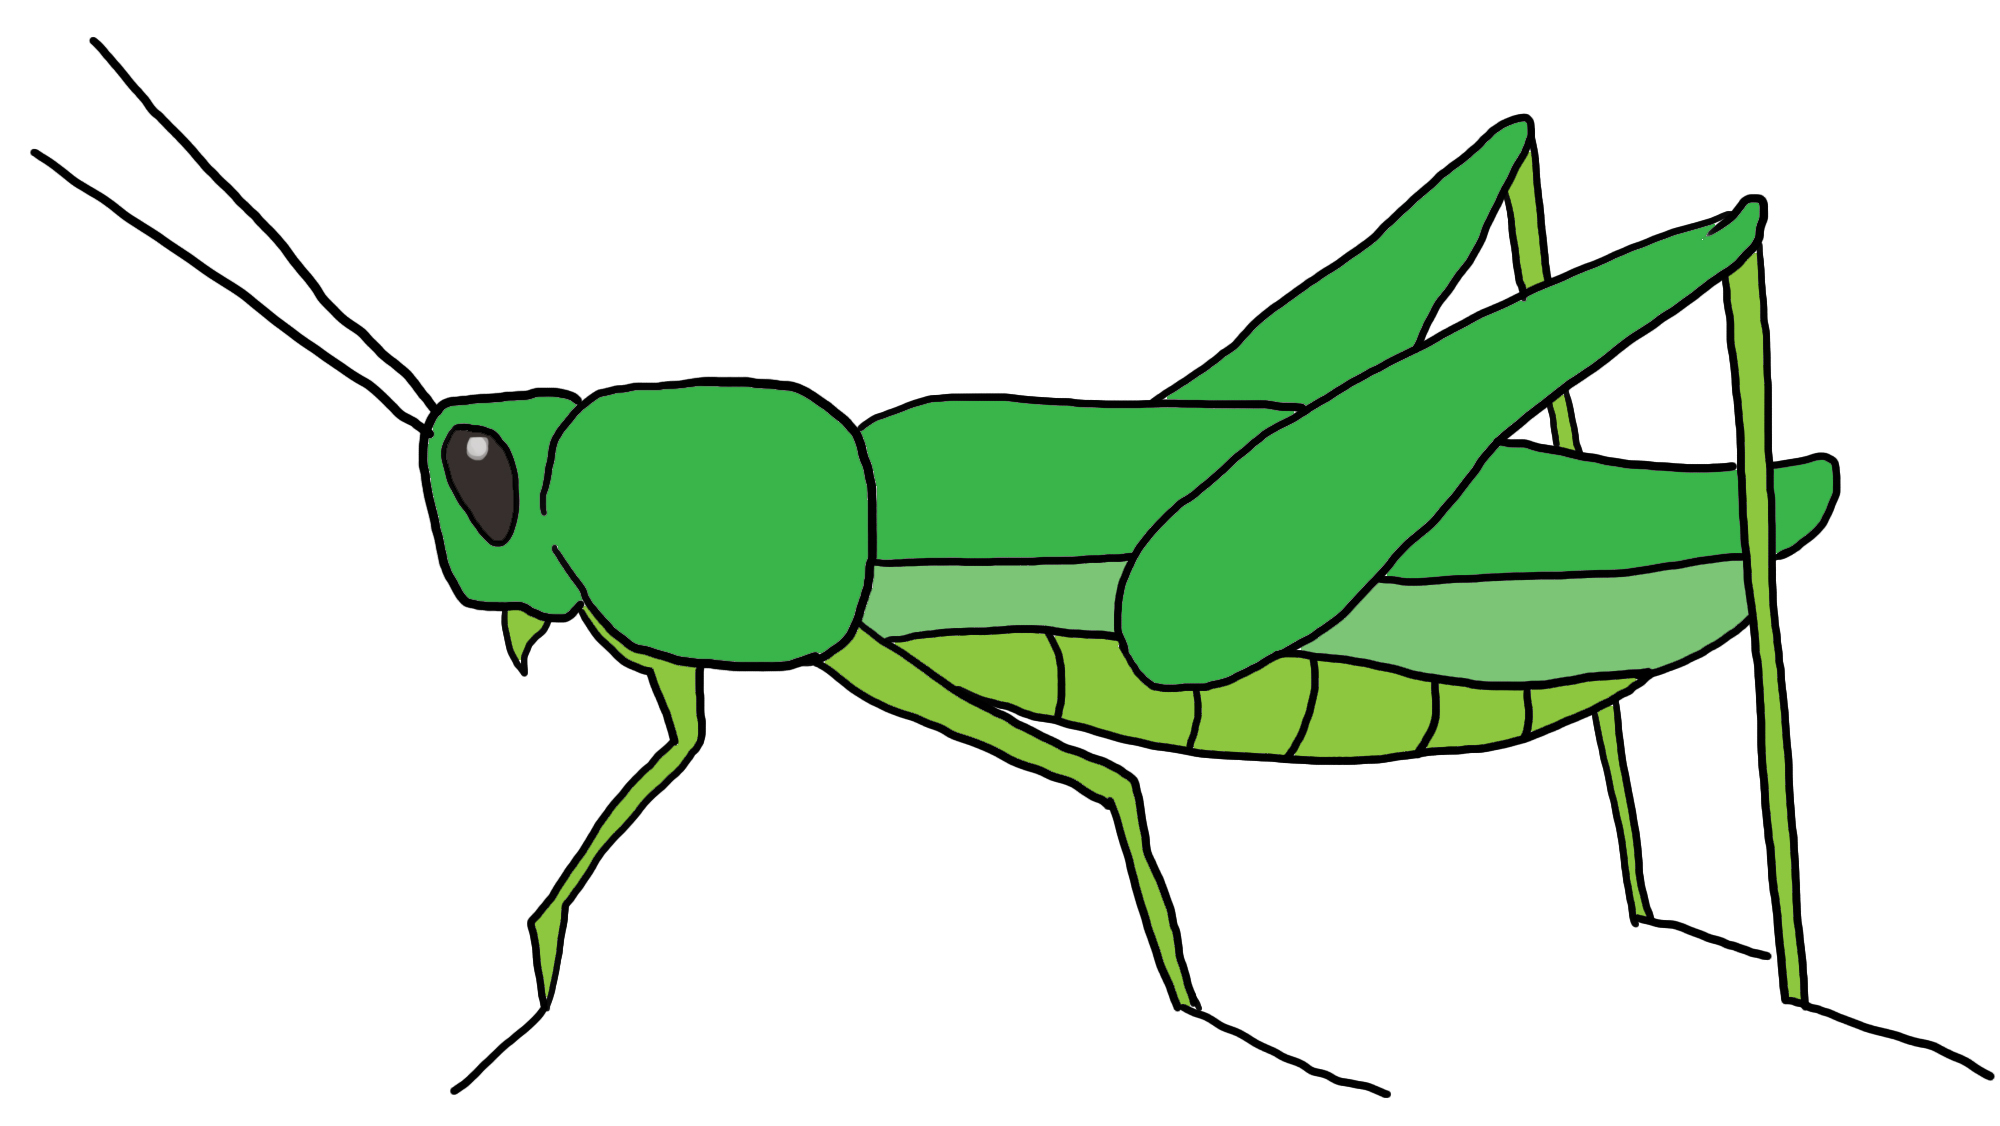 clip art freeuse Best clipartion com . Grasshopper clipart.